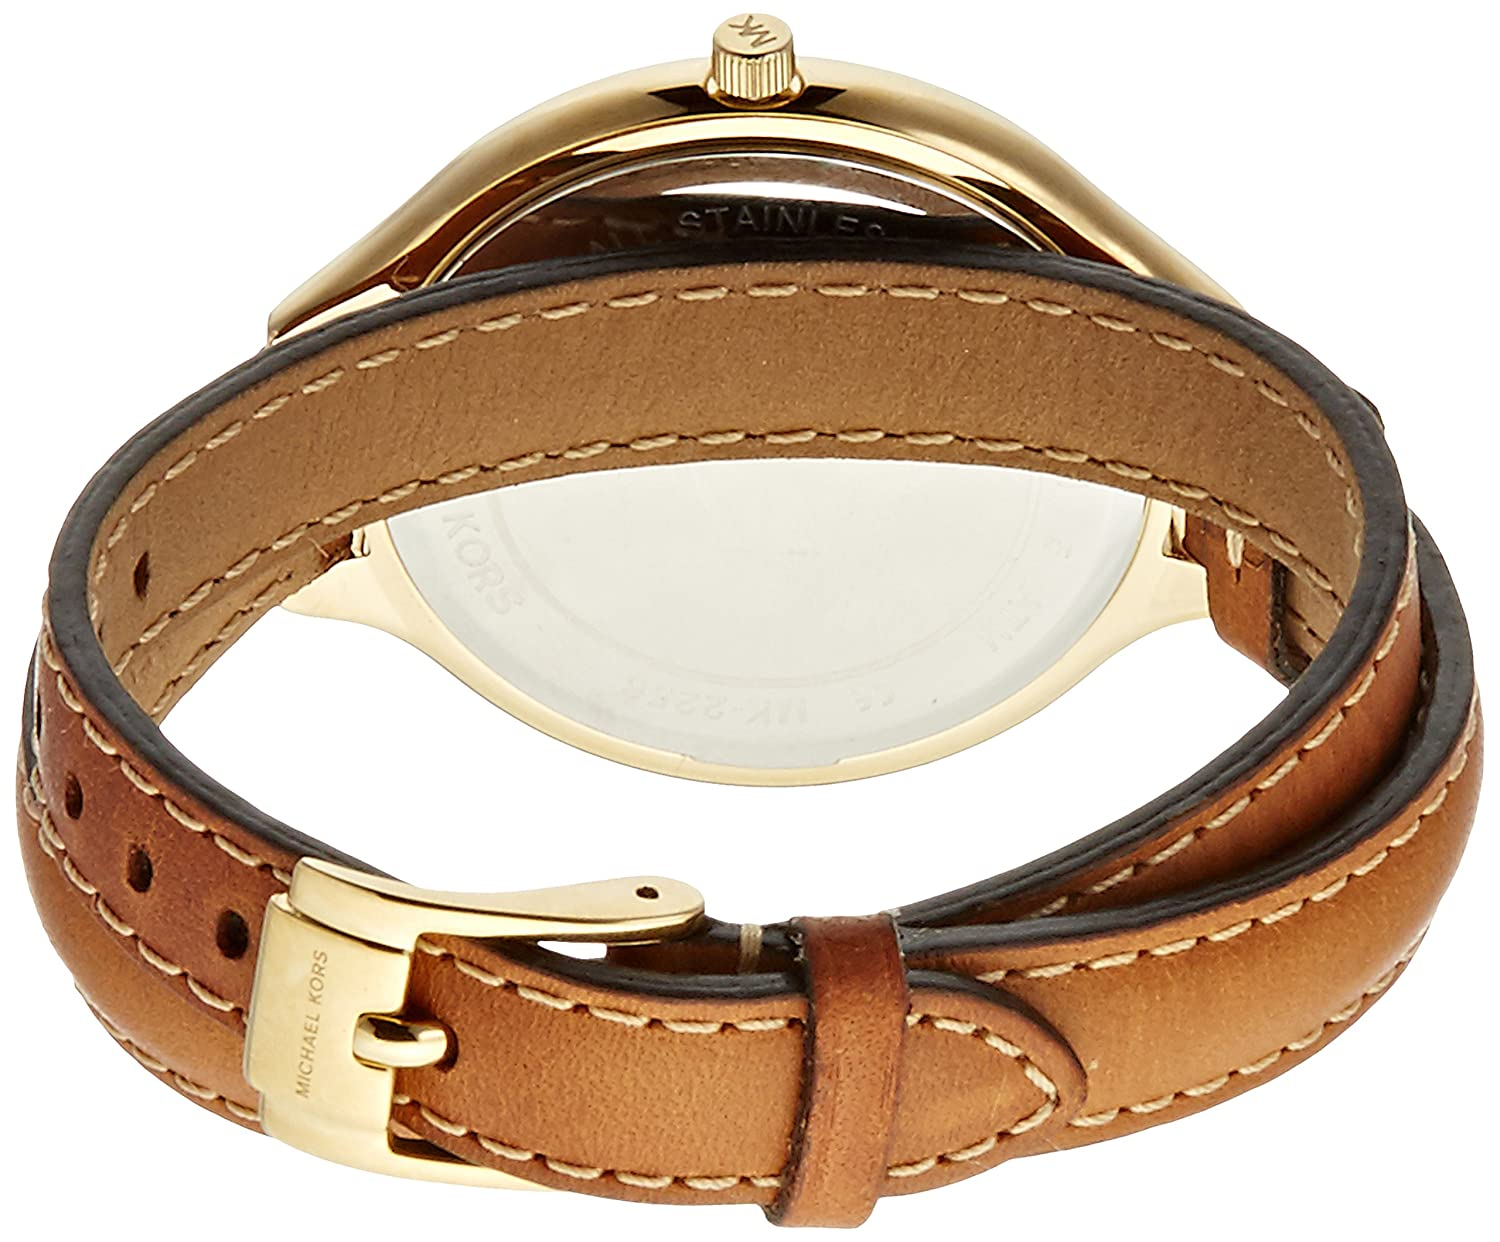 666f2cf5bc7c Amazon.com  Michael Kors Women s Runway Brown Watch MK2256  Michael Kors   Watches